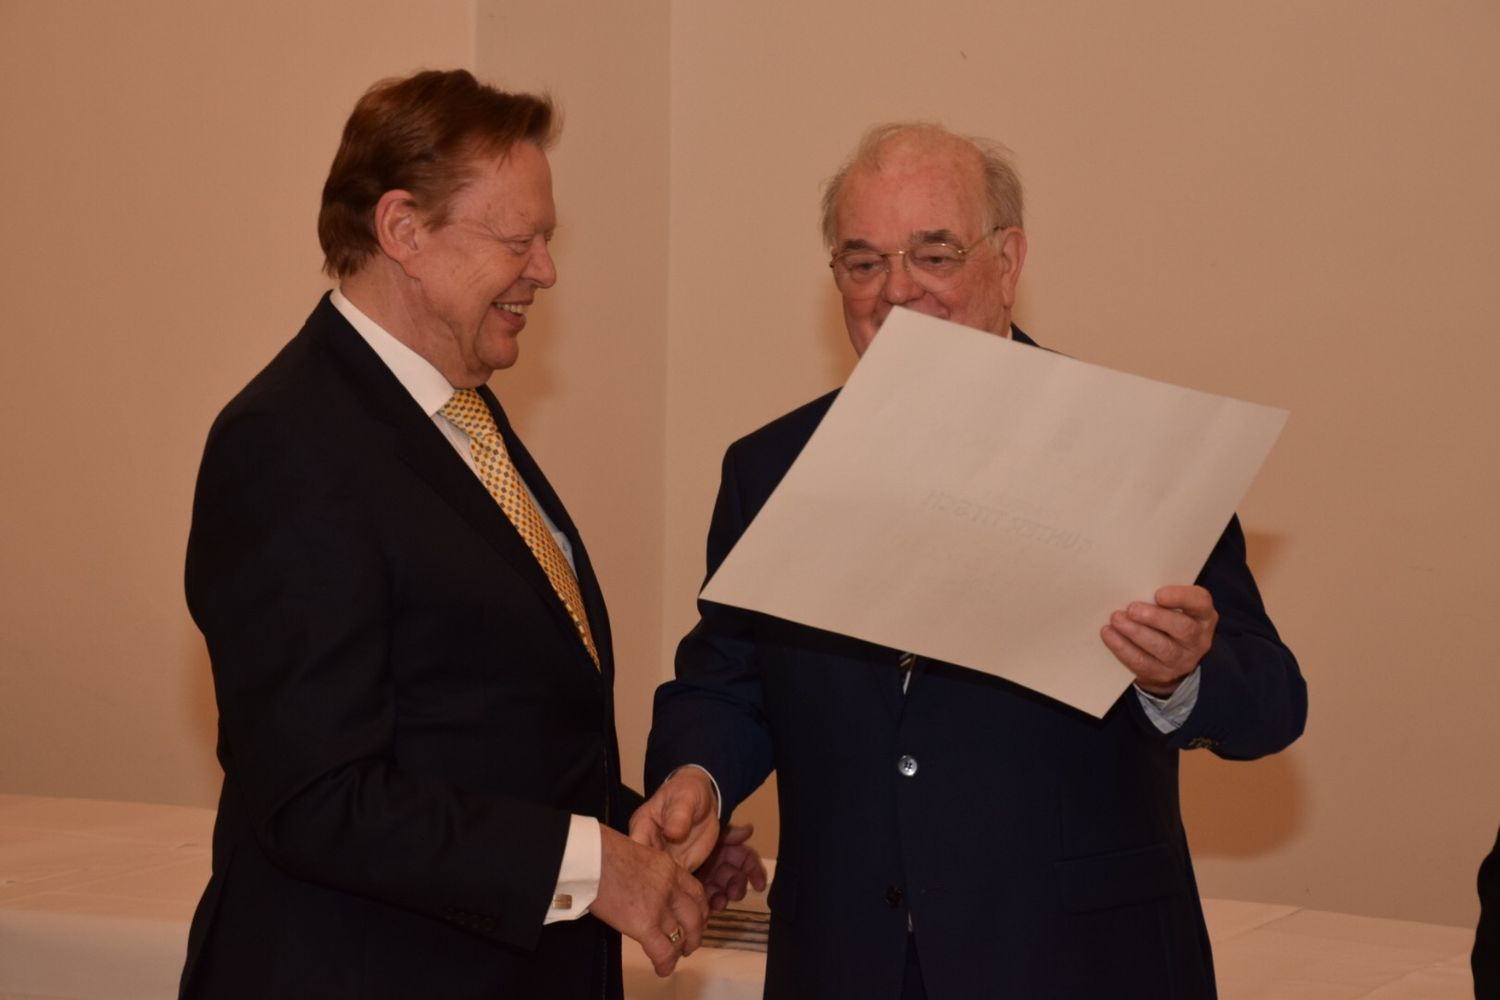 Günter Titsch receives the certificate of honor from Prof. Friedrich Lessky © INTERKULTUR